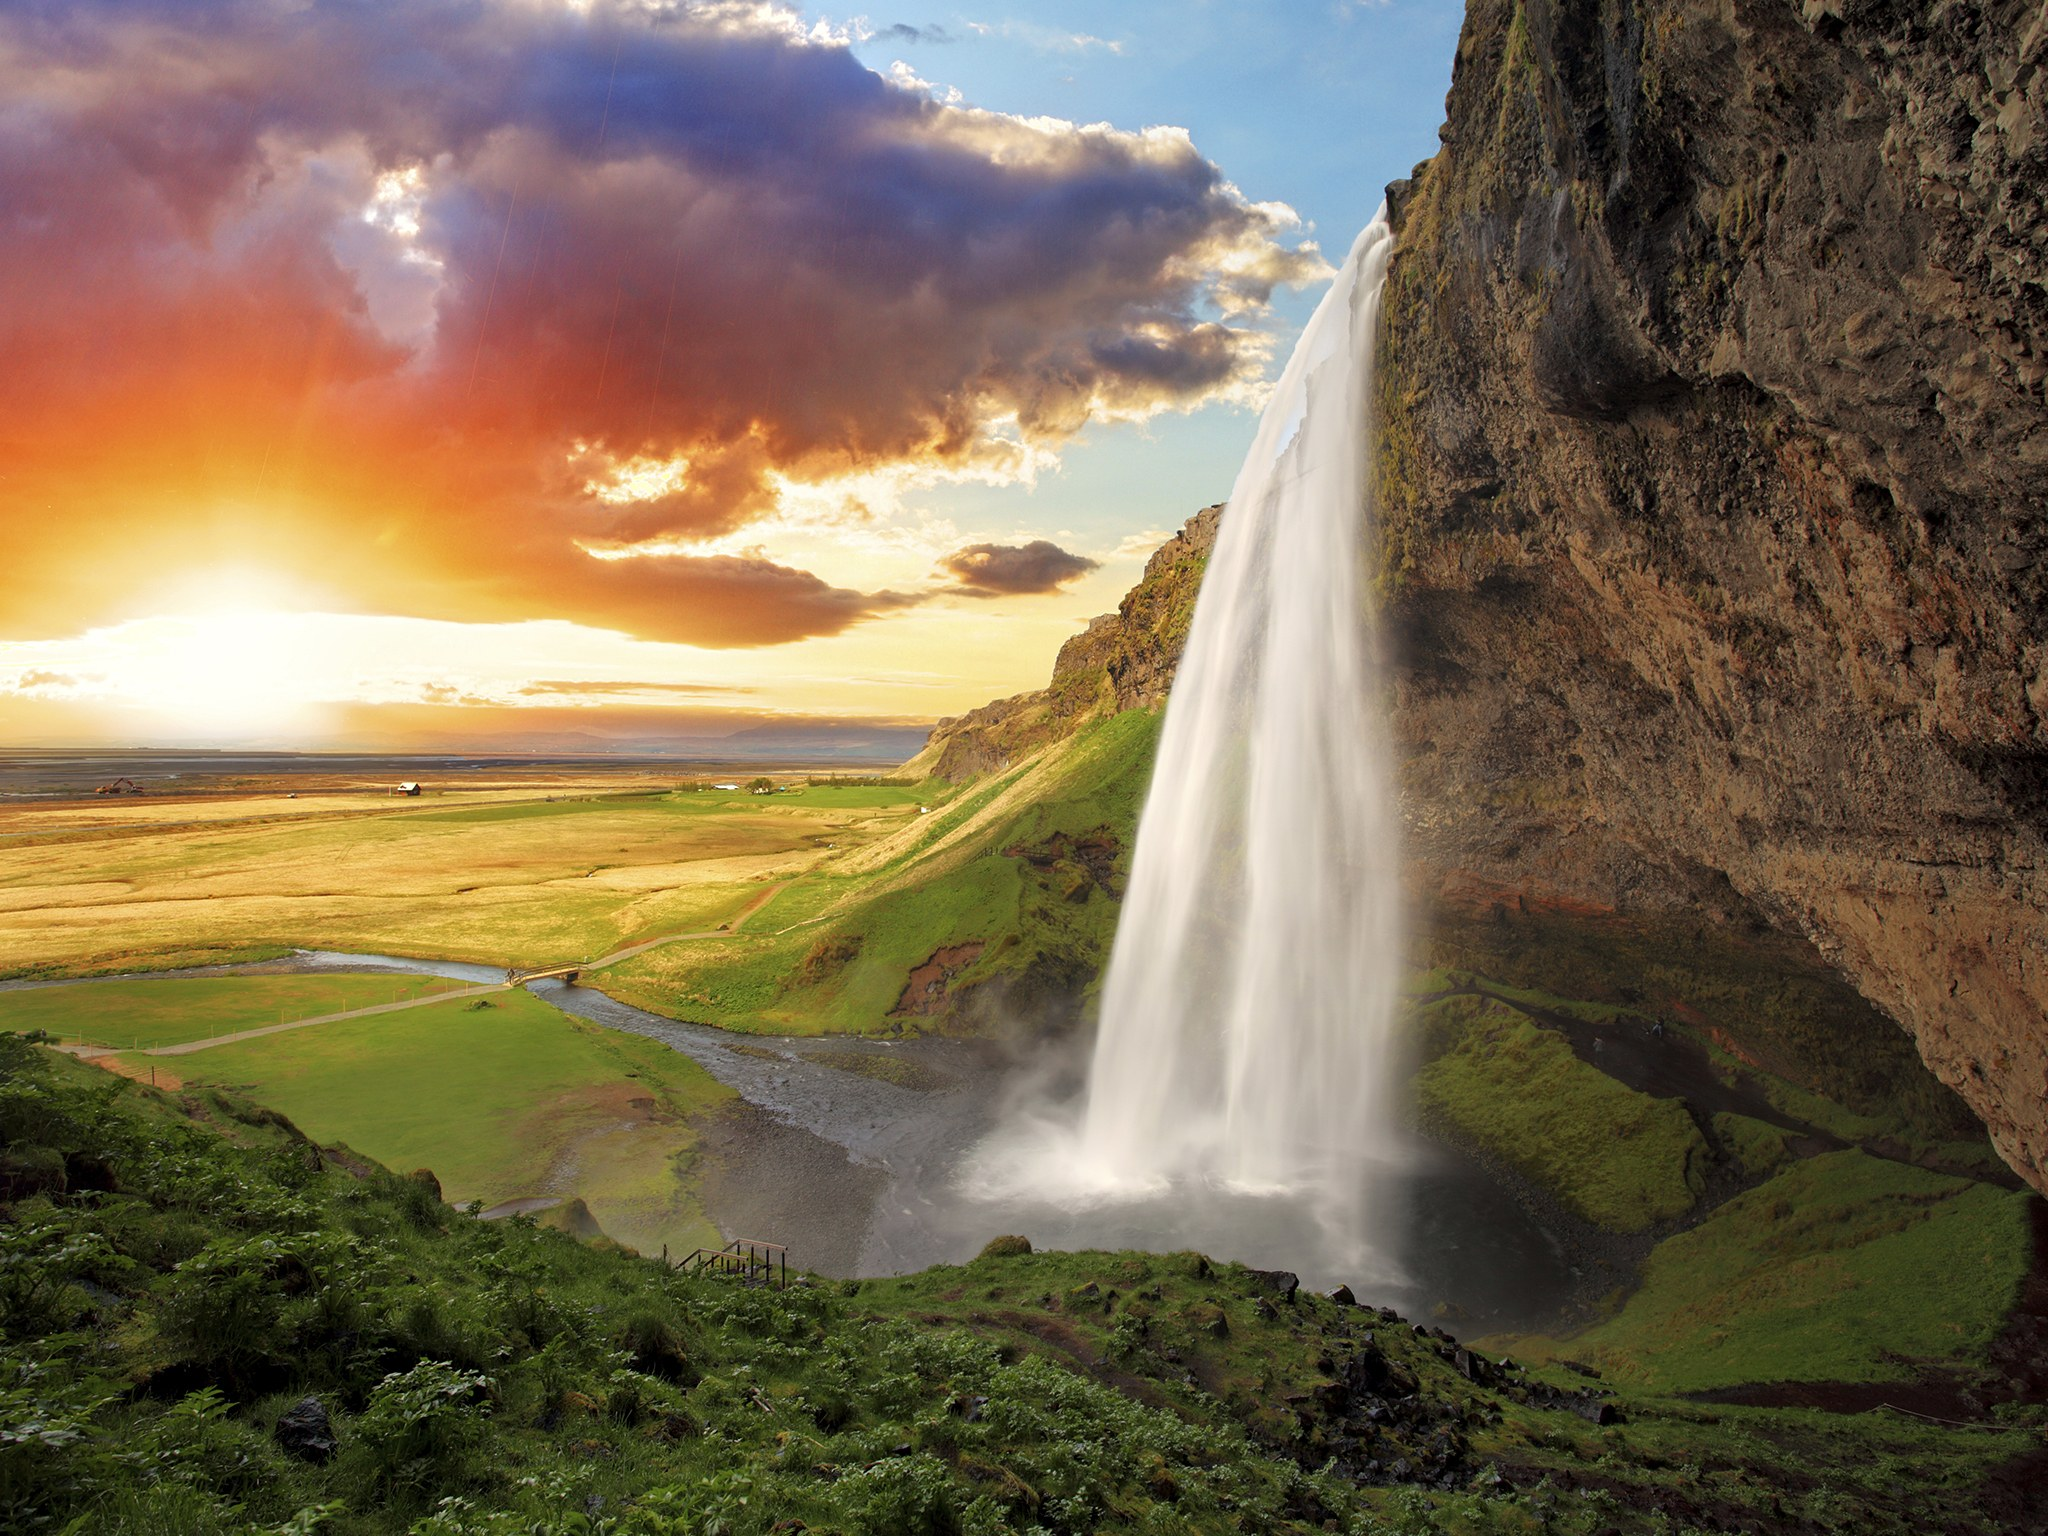 15 Most Beautiful Waterfalls in the World - Condé Nast Traveler